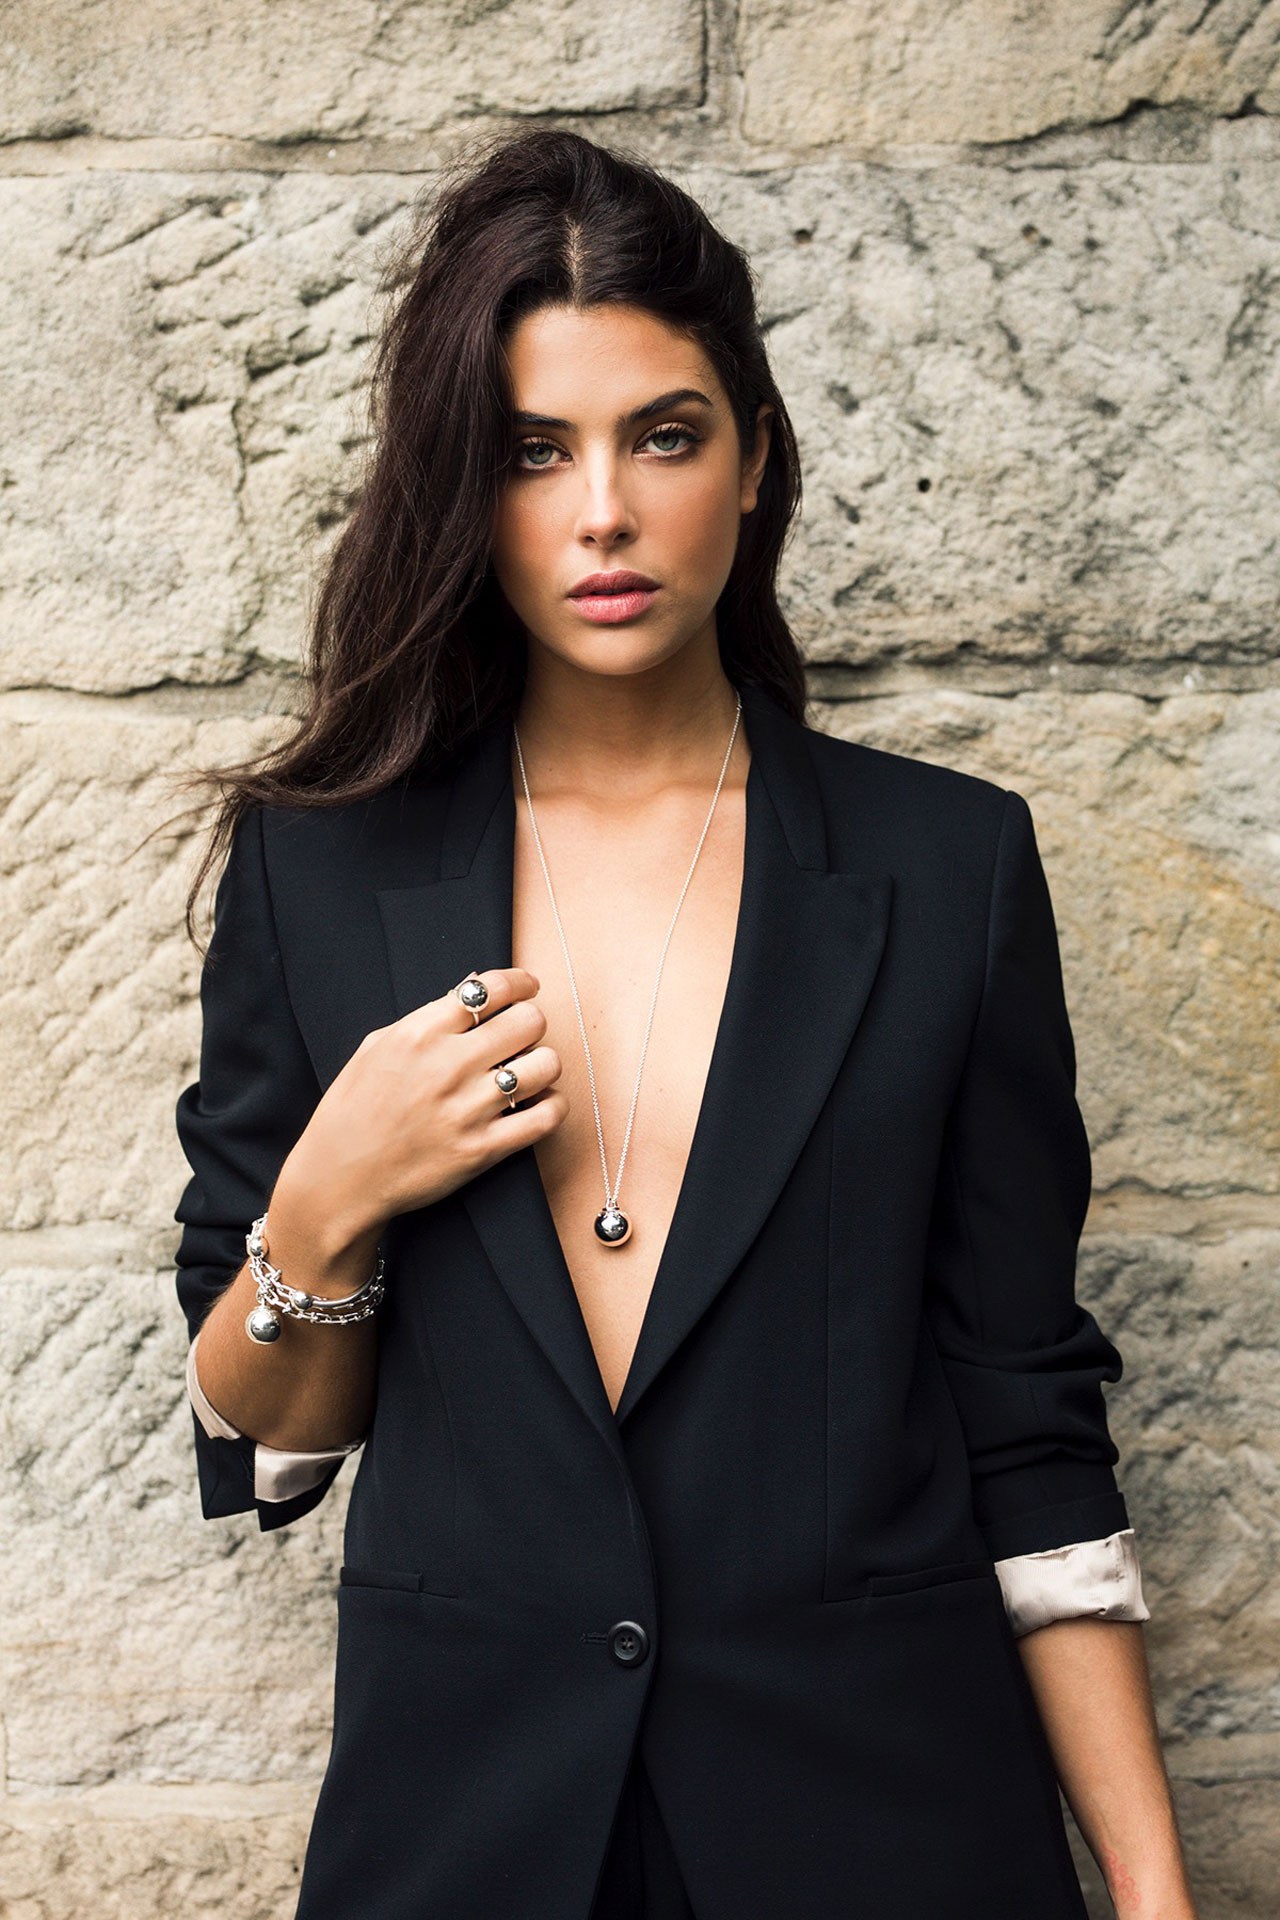 How To Style Metal Jewellery Like These Fashion Stars